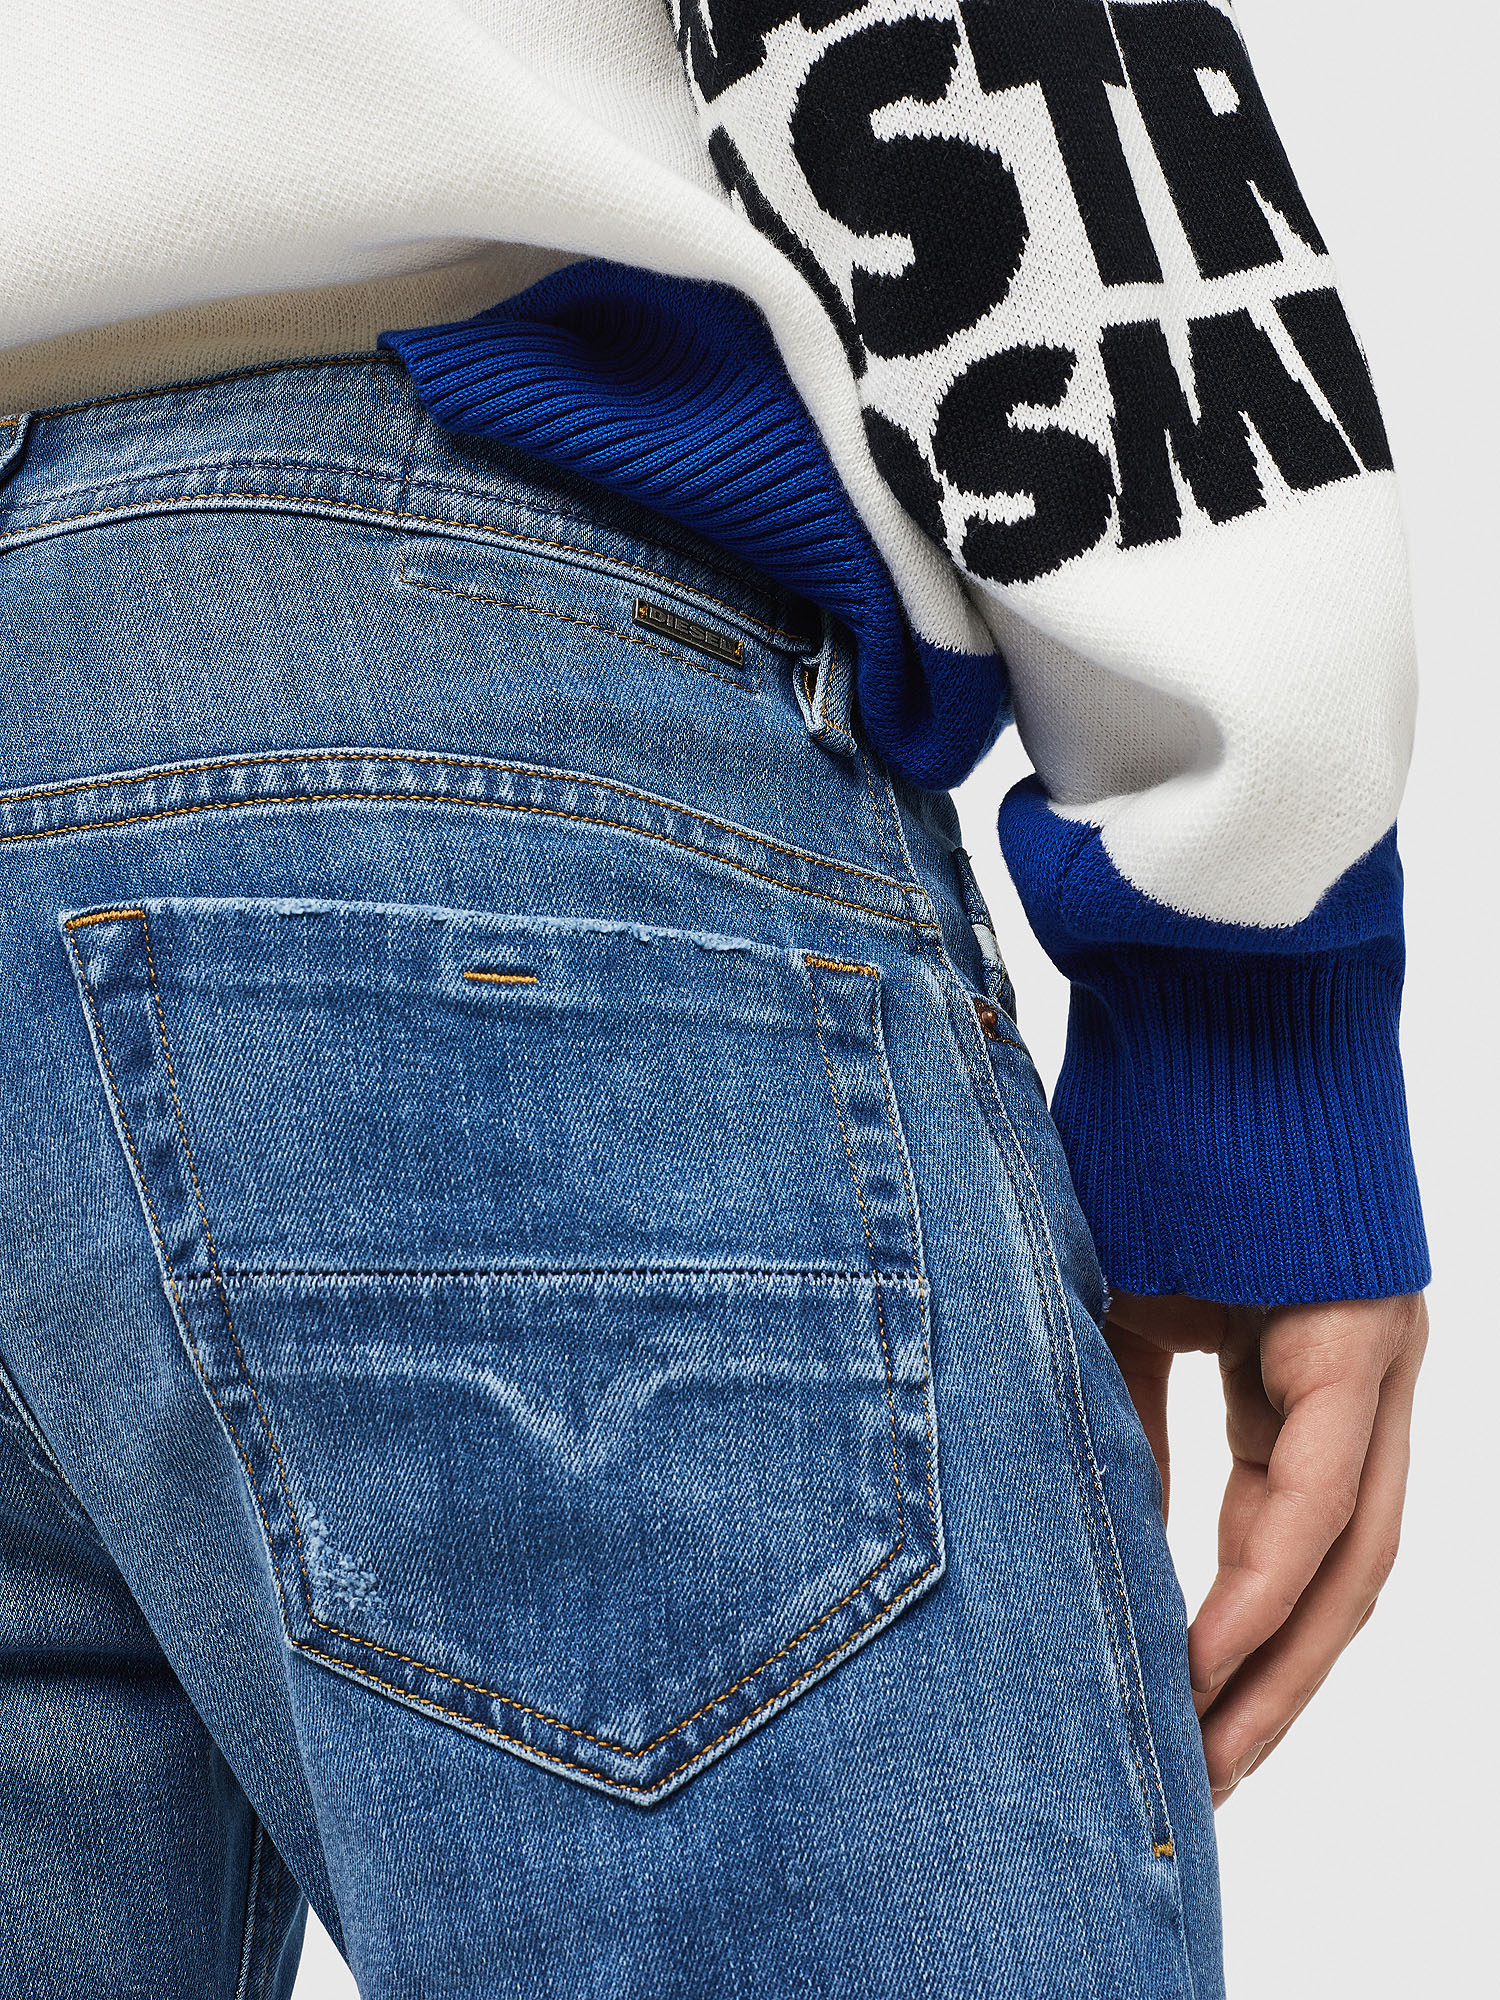 Diesel - Thommer 083AX,  - Jeans - Image 4